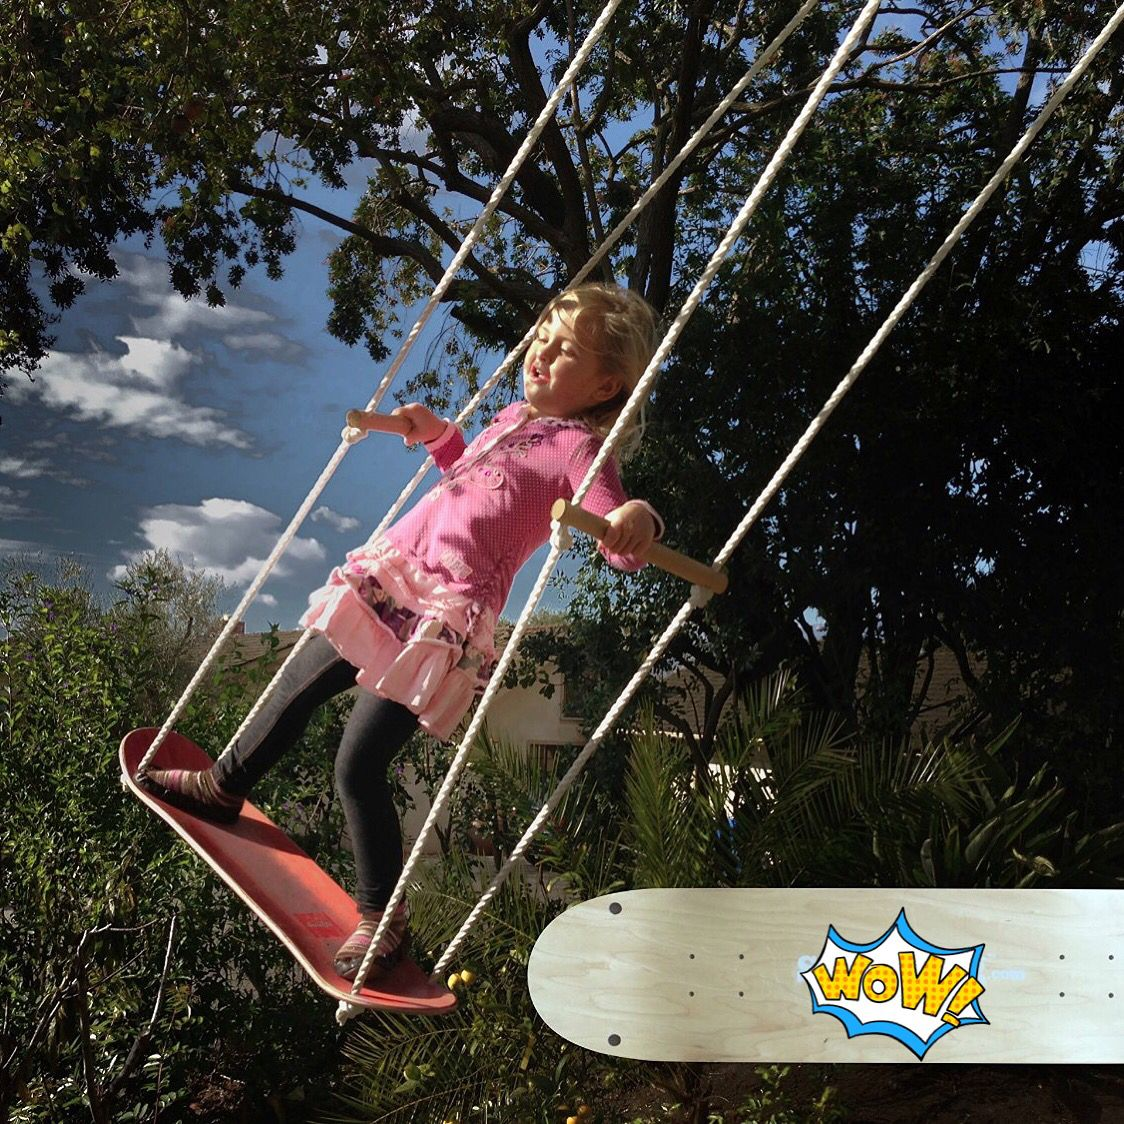 do you want to own this awesome skateboard swing in your backyard